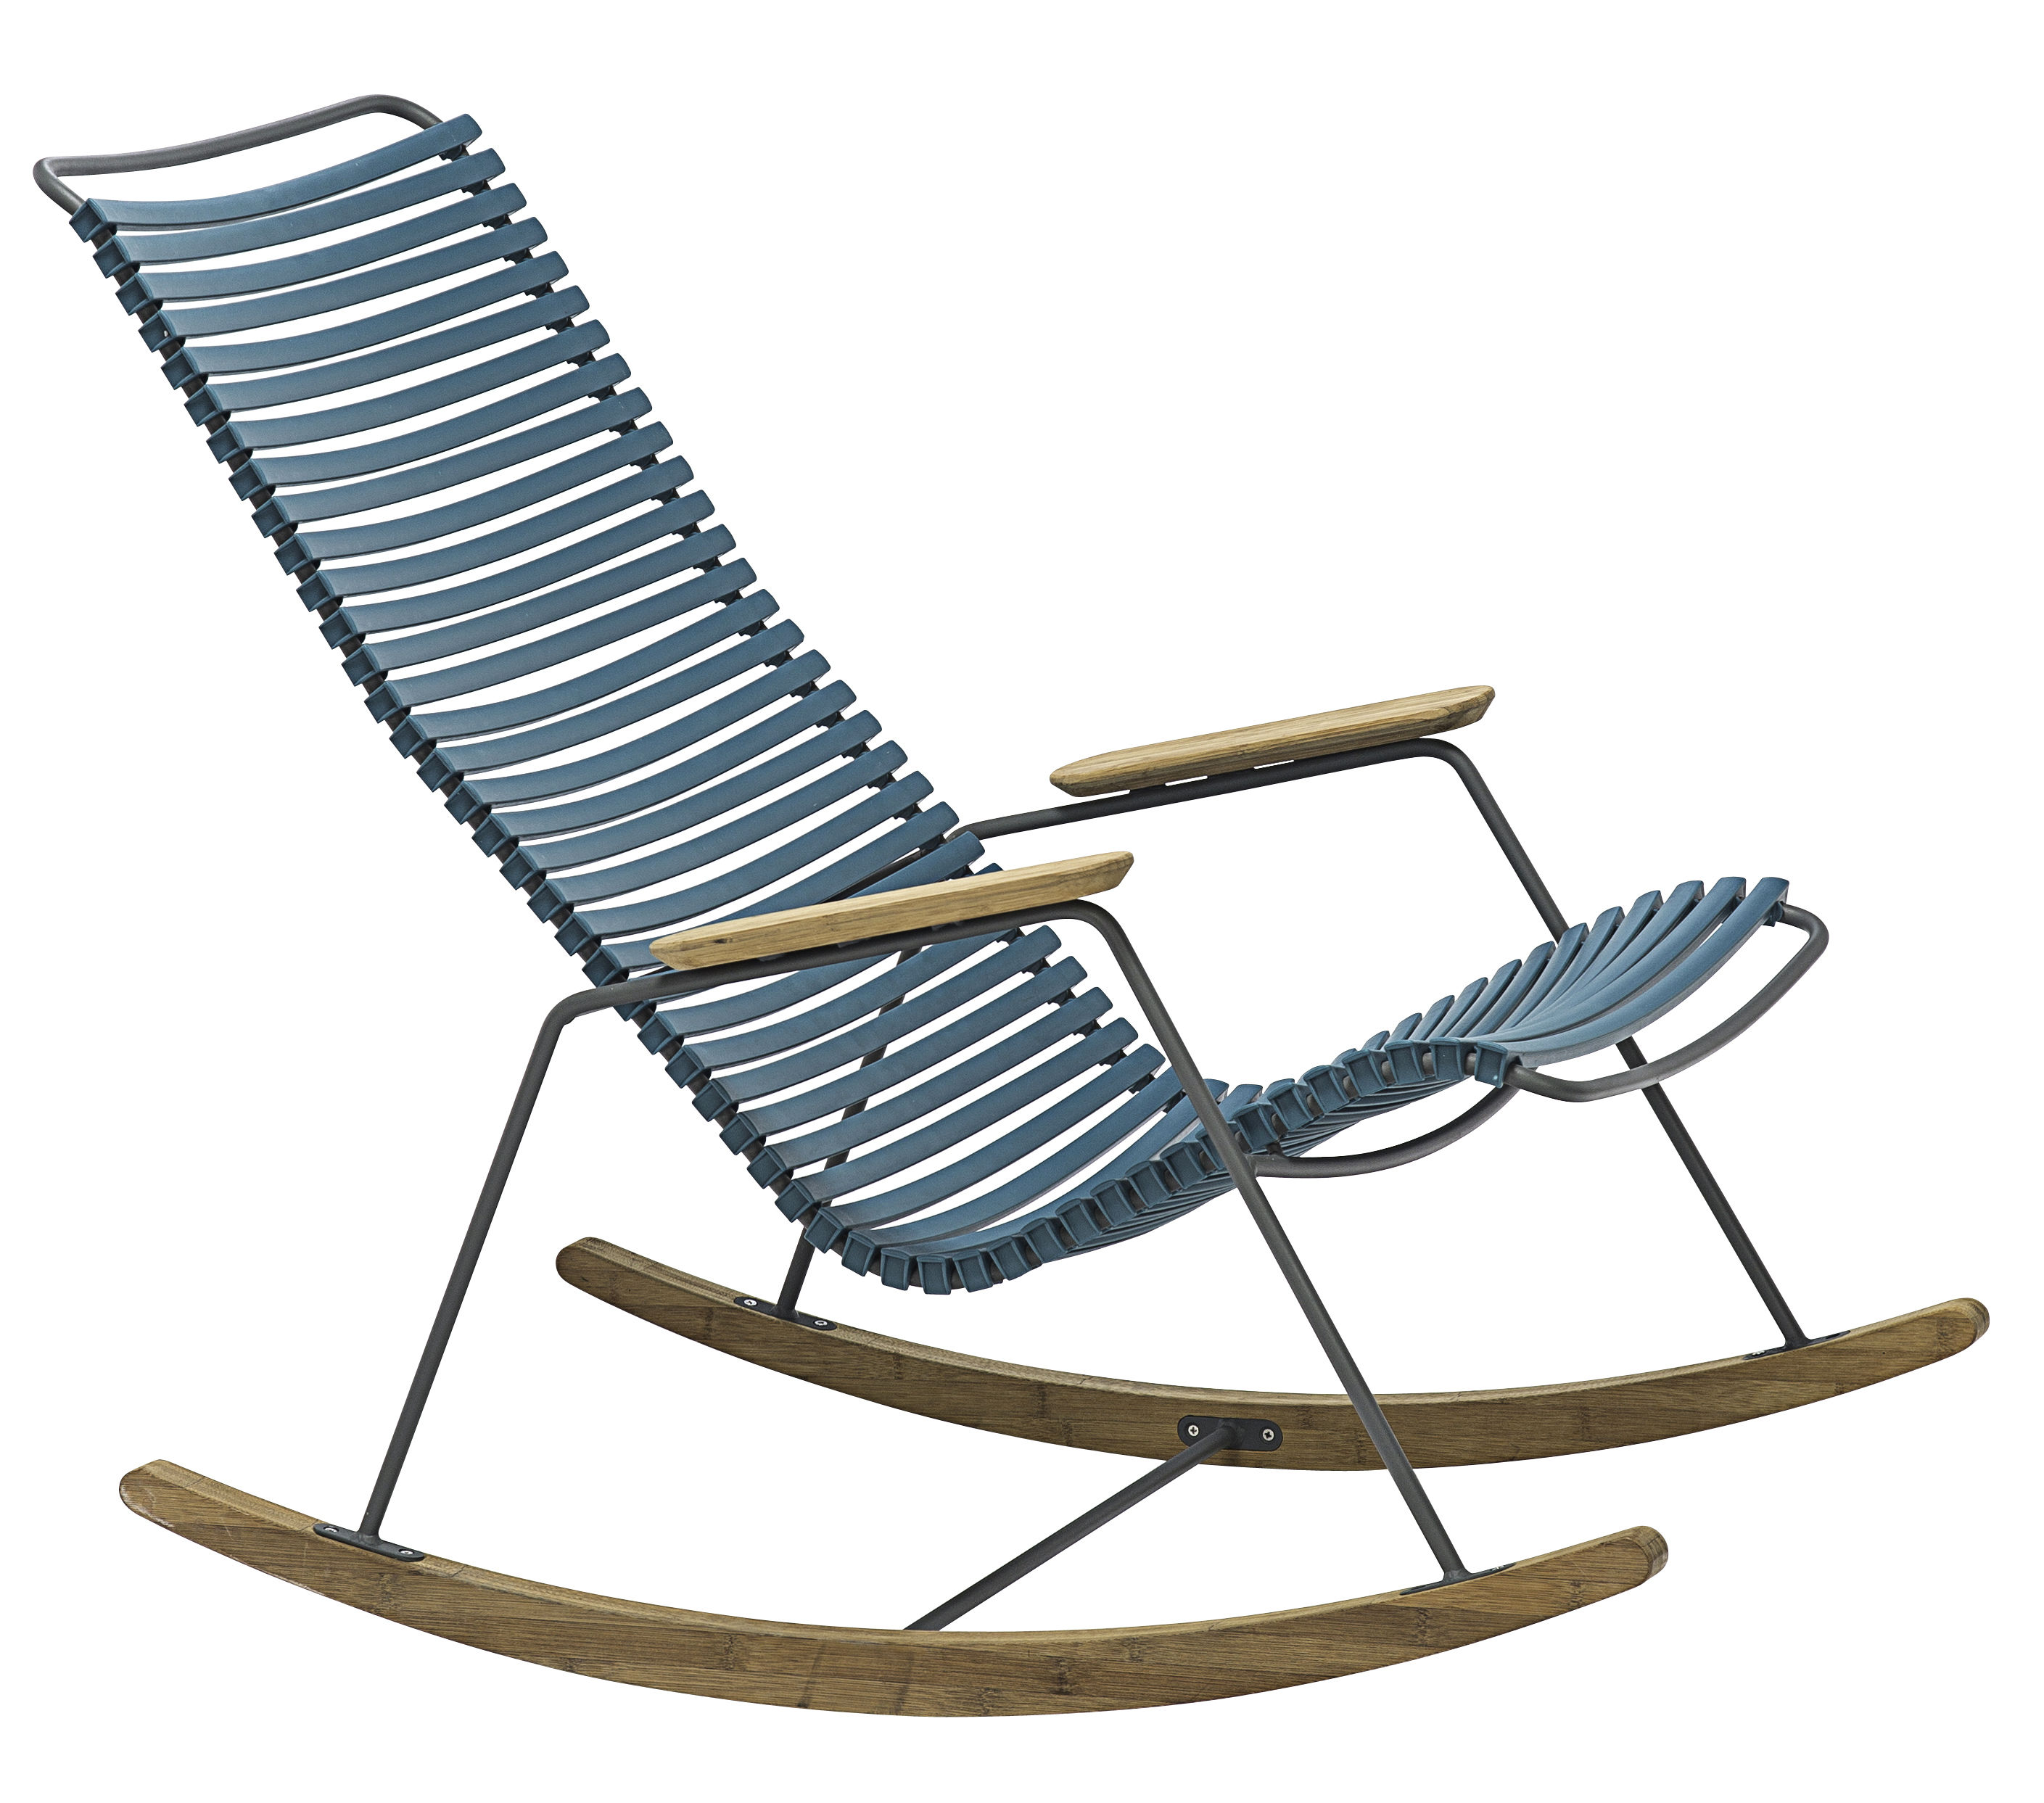 Outdoor - Chairs - Click Rocking chair - Plastic & bamboo by Houe - Oil blue - Bamboo, Metal, Plastic material